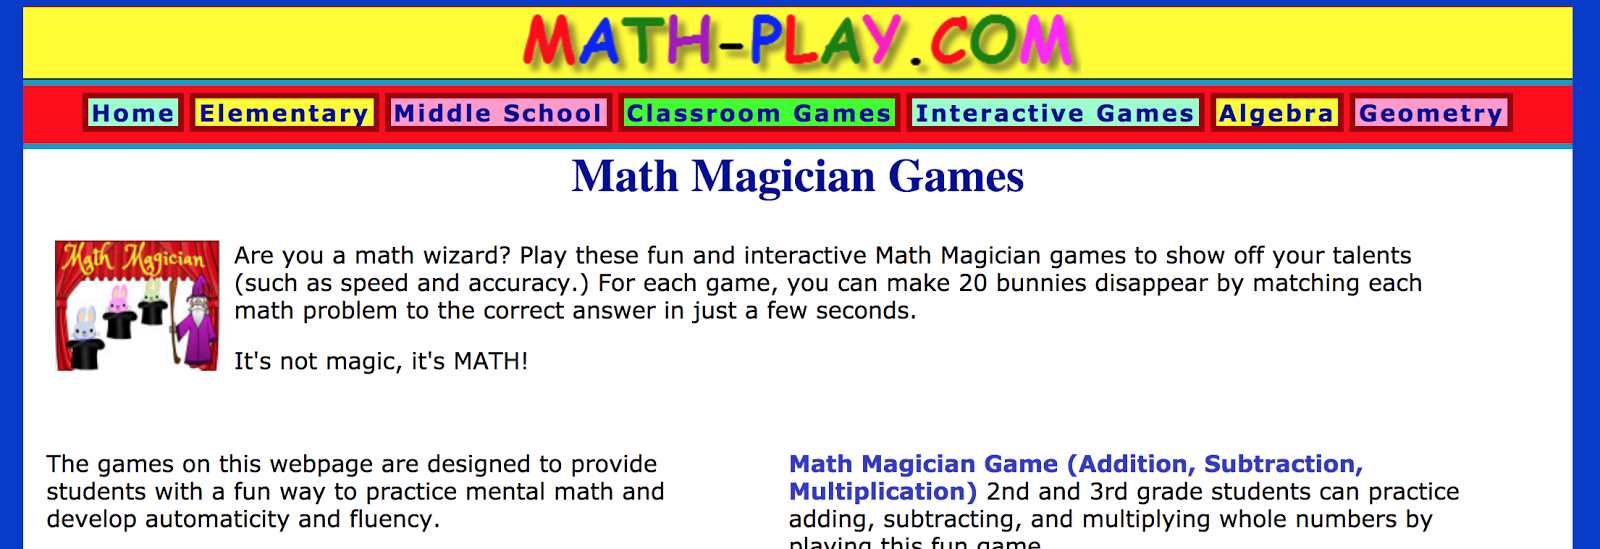 Swamp Frog Kids: Math Magician Games